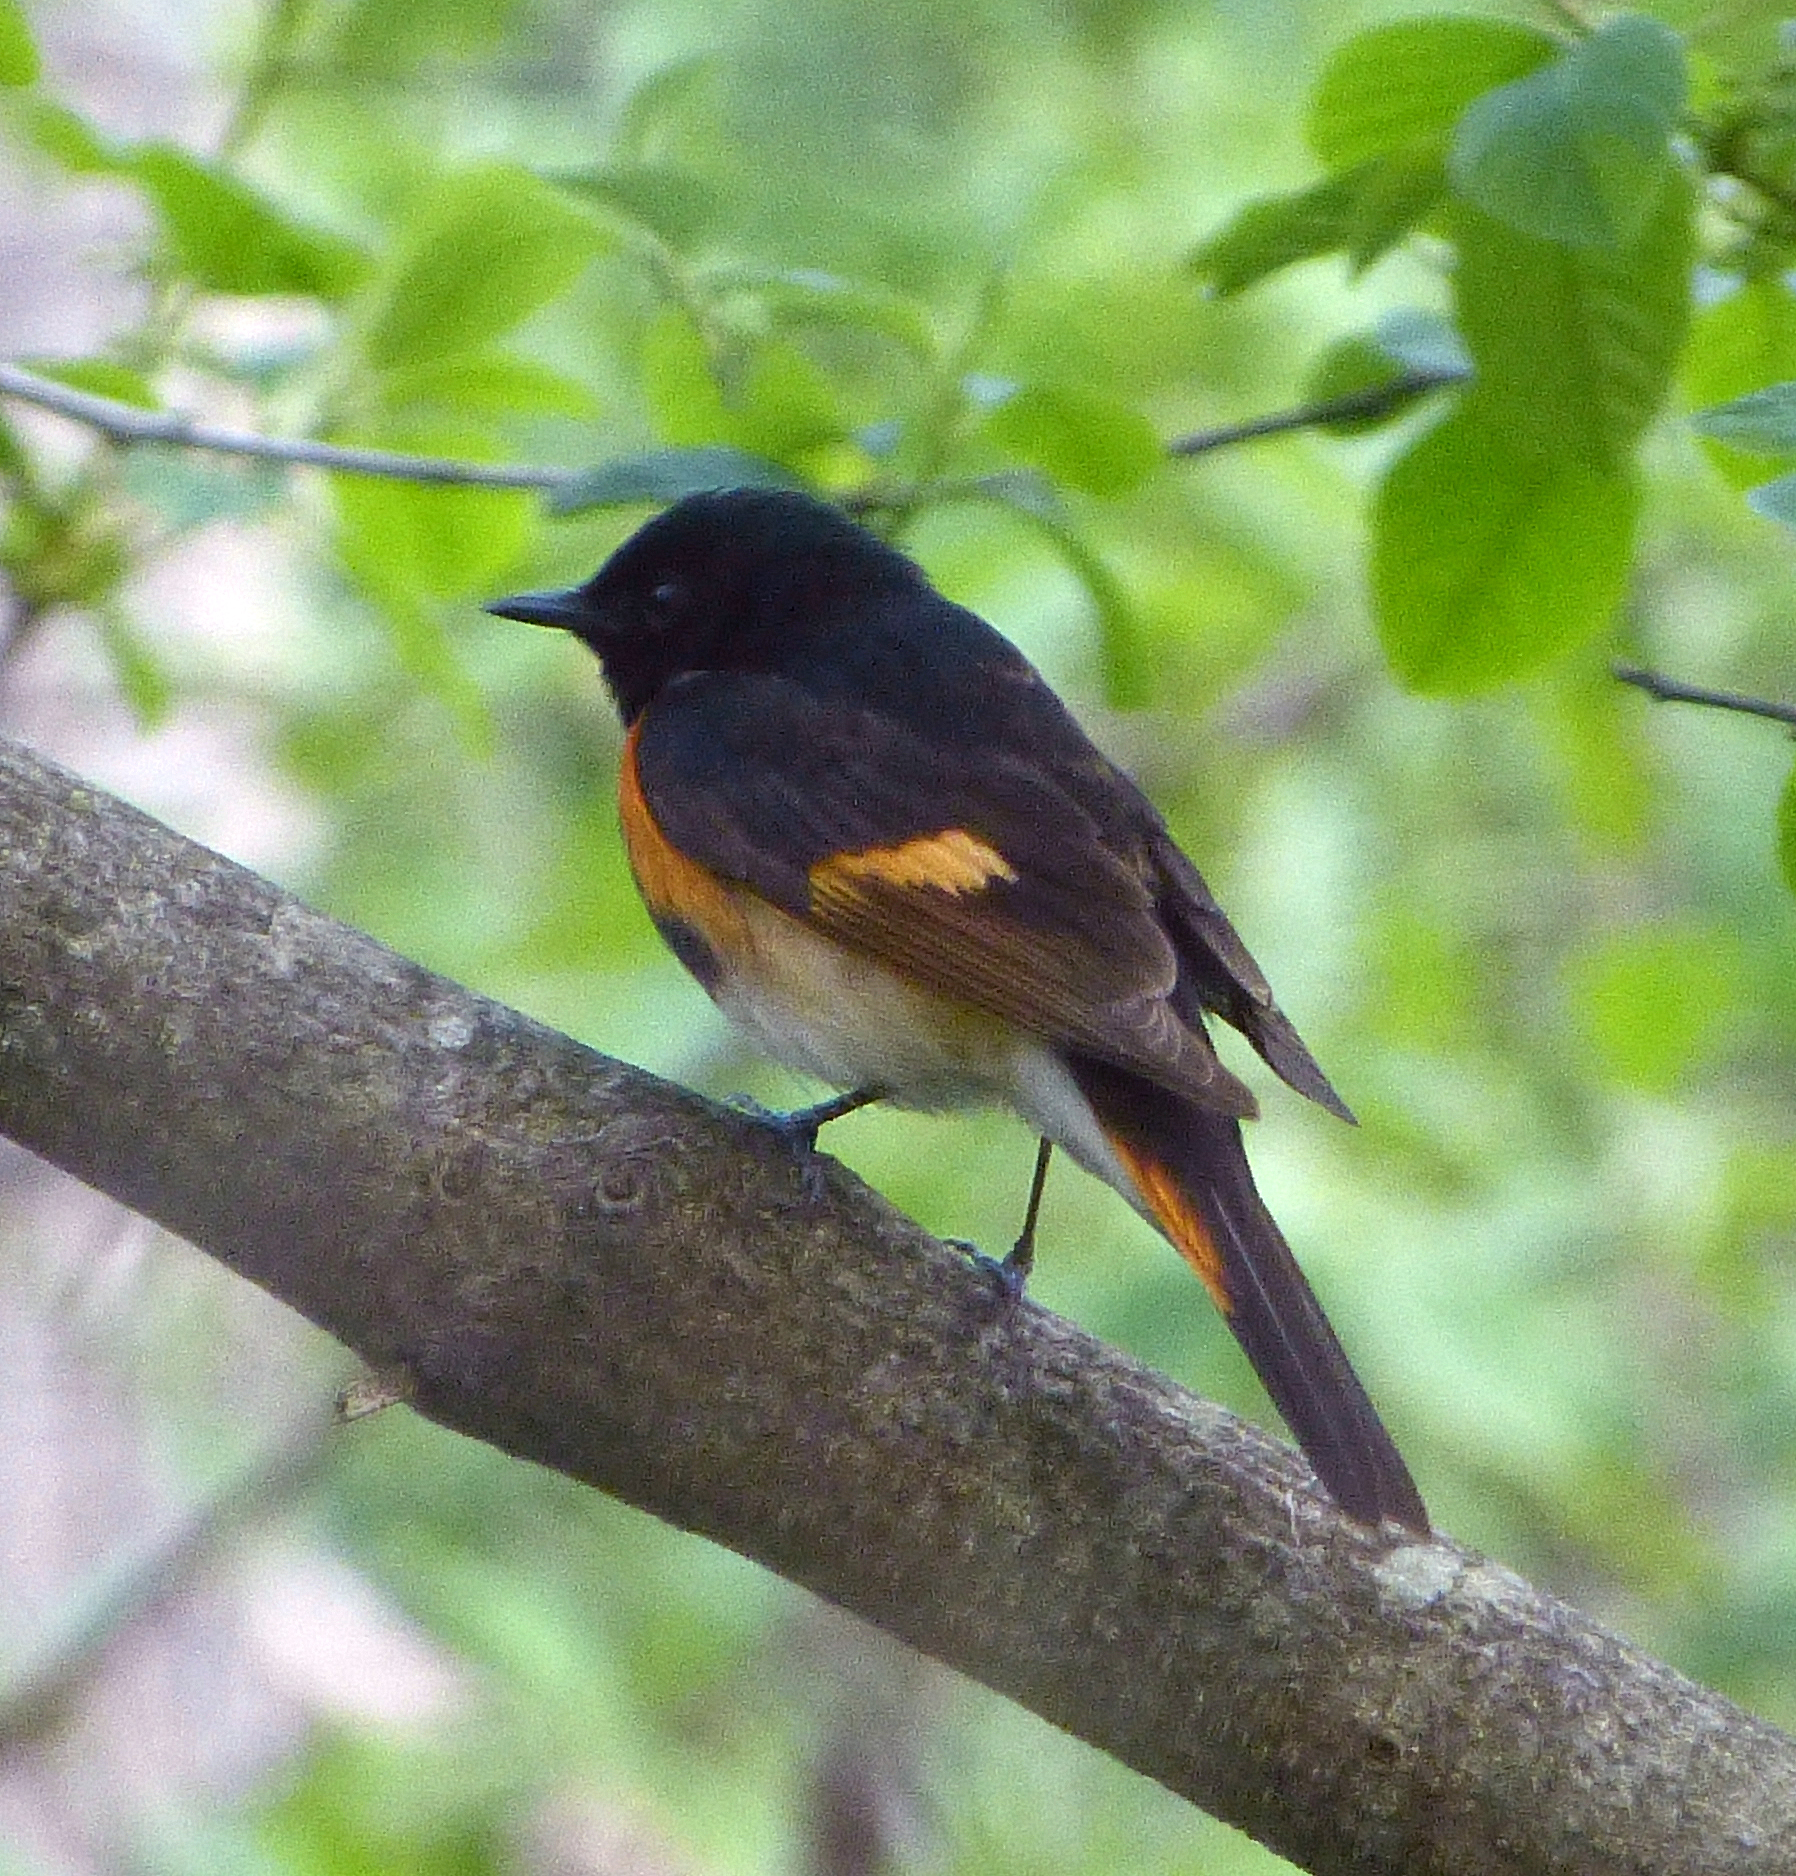 American Redstart, male. The bird we had today was a less colorful female.